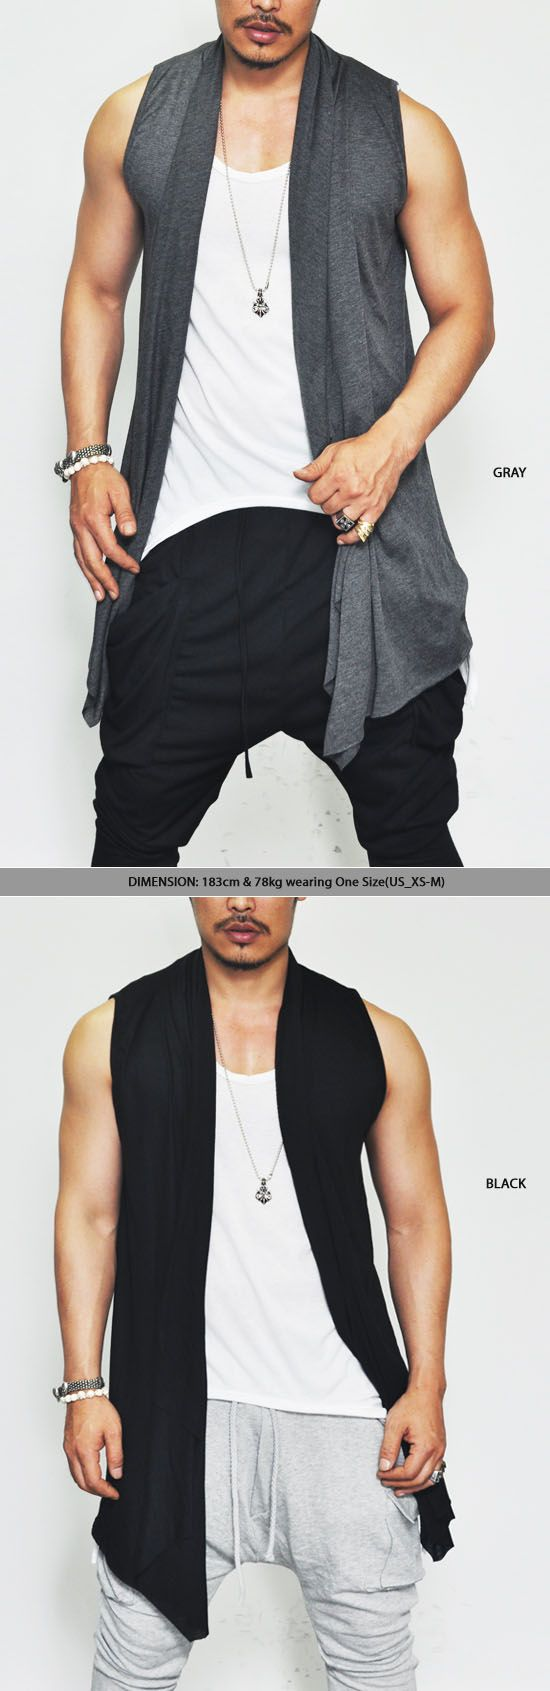 Outerwear :: Vests :: Ruffle Shawl Cutoff Shirring Cardigan Vest-Vest 59 - Mens Fashion Clothing For An Attractive Guy Look